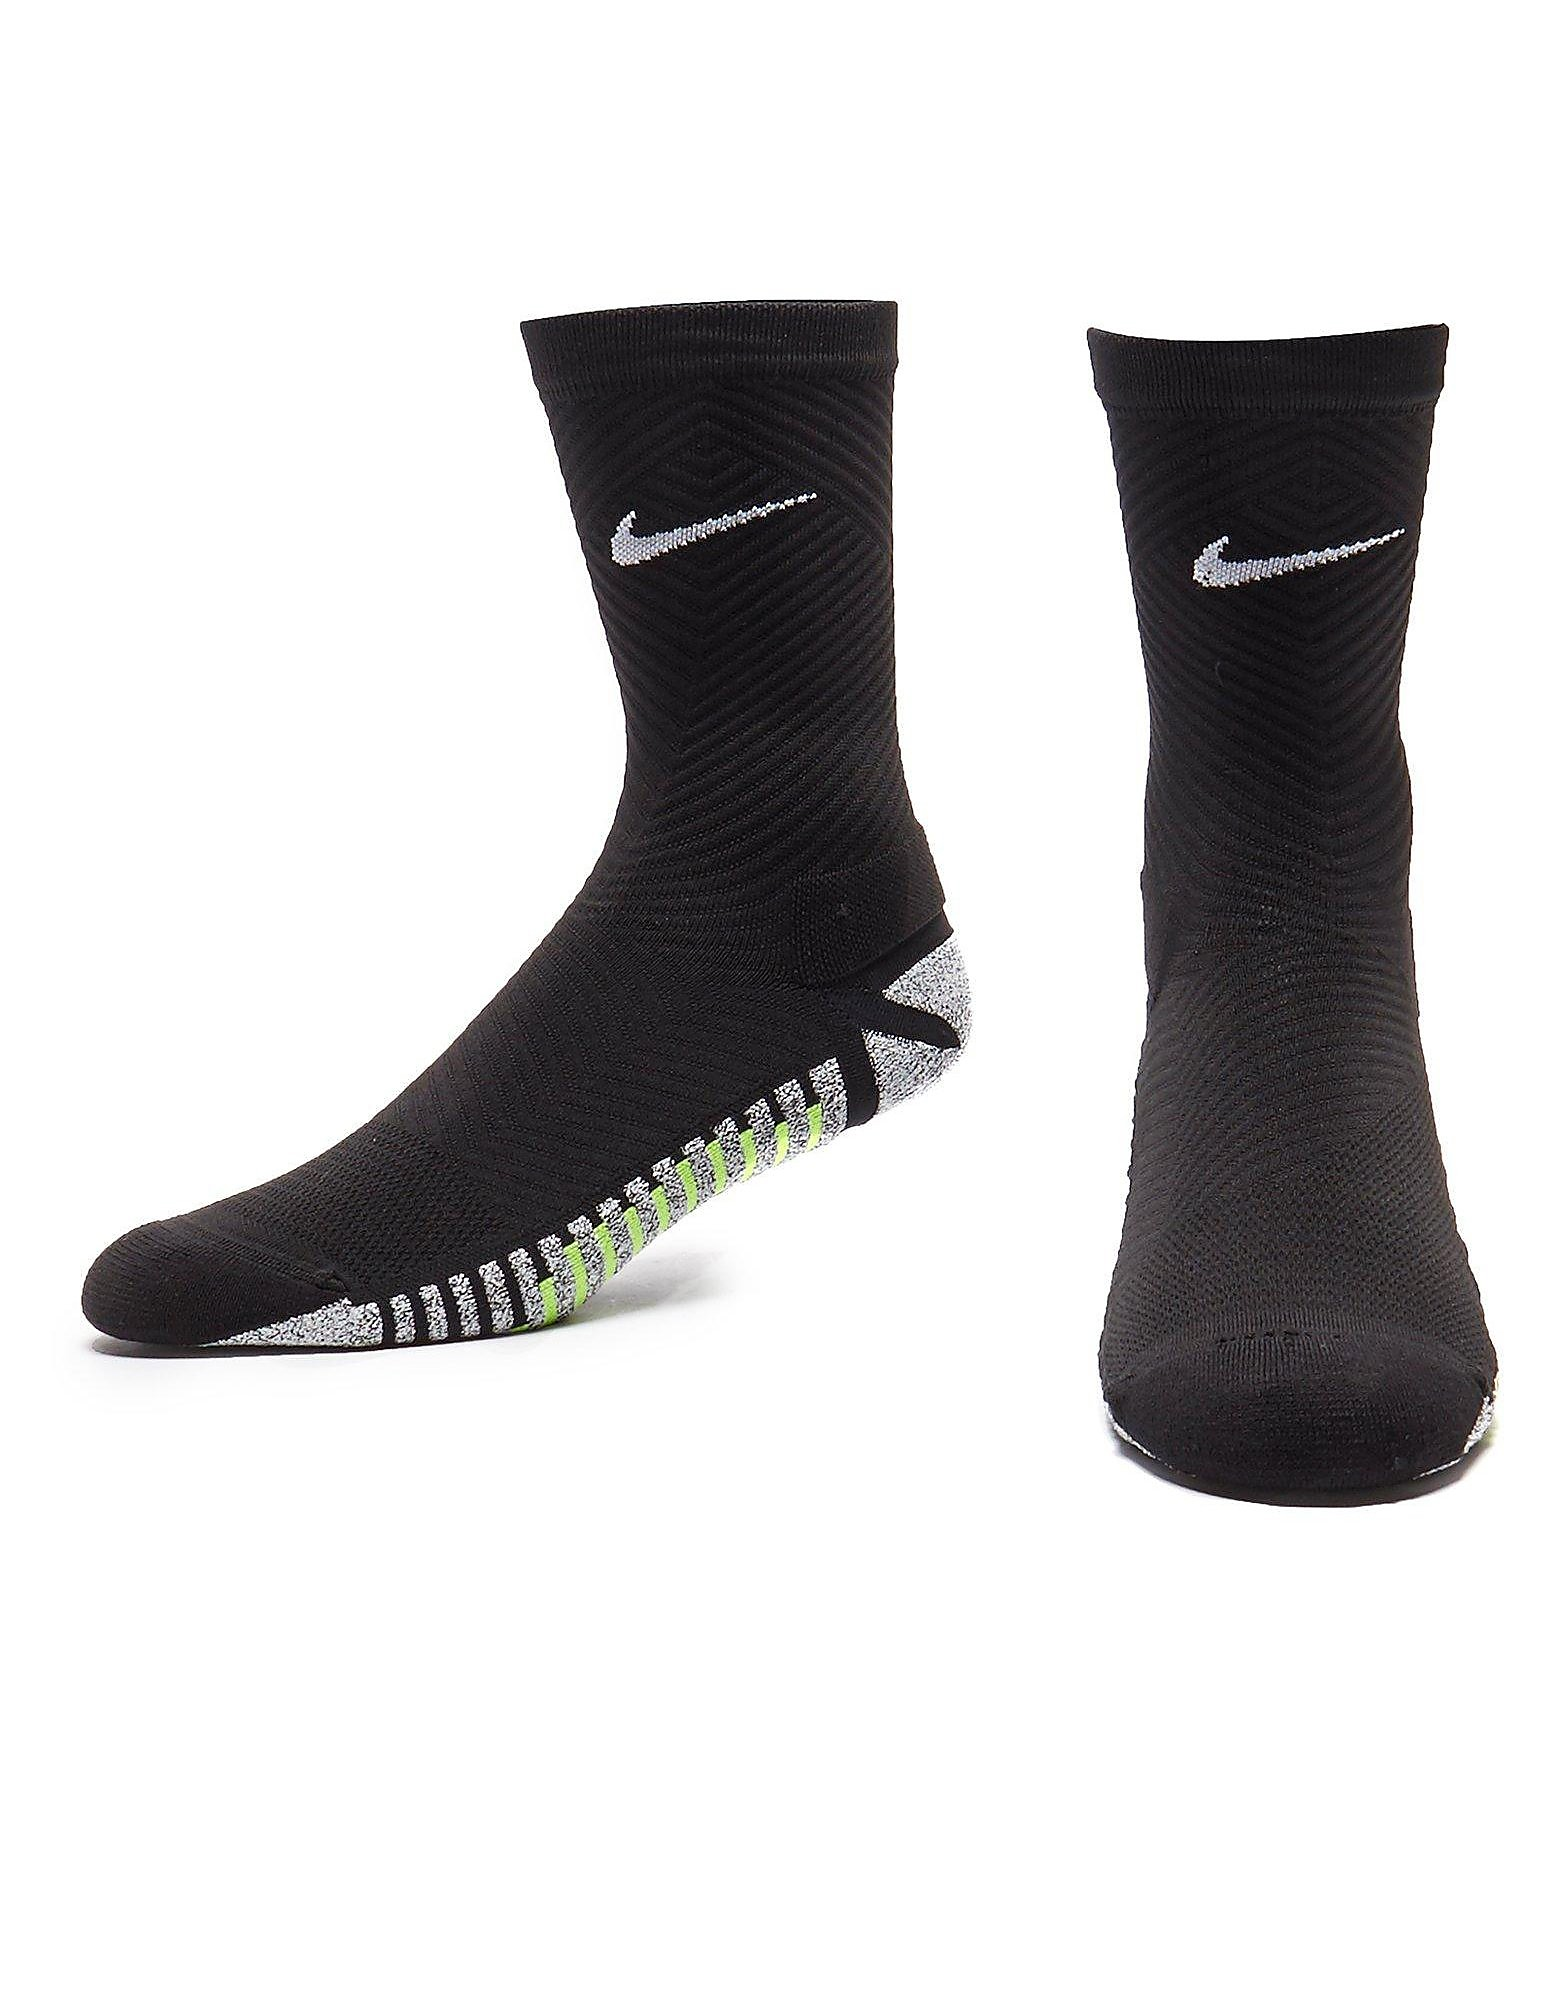 Nike calcetines Grip Strike